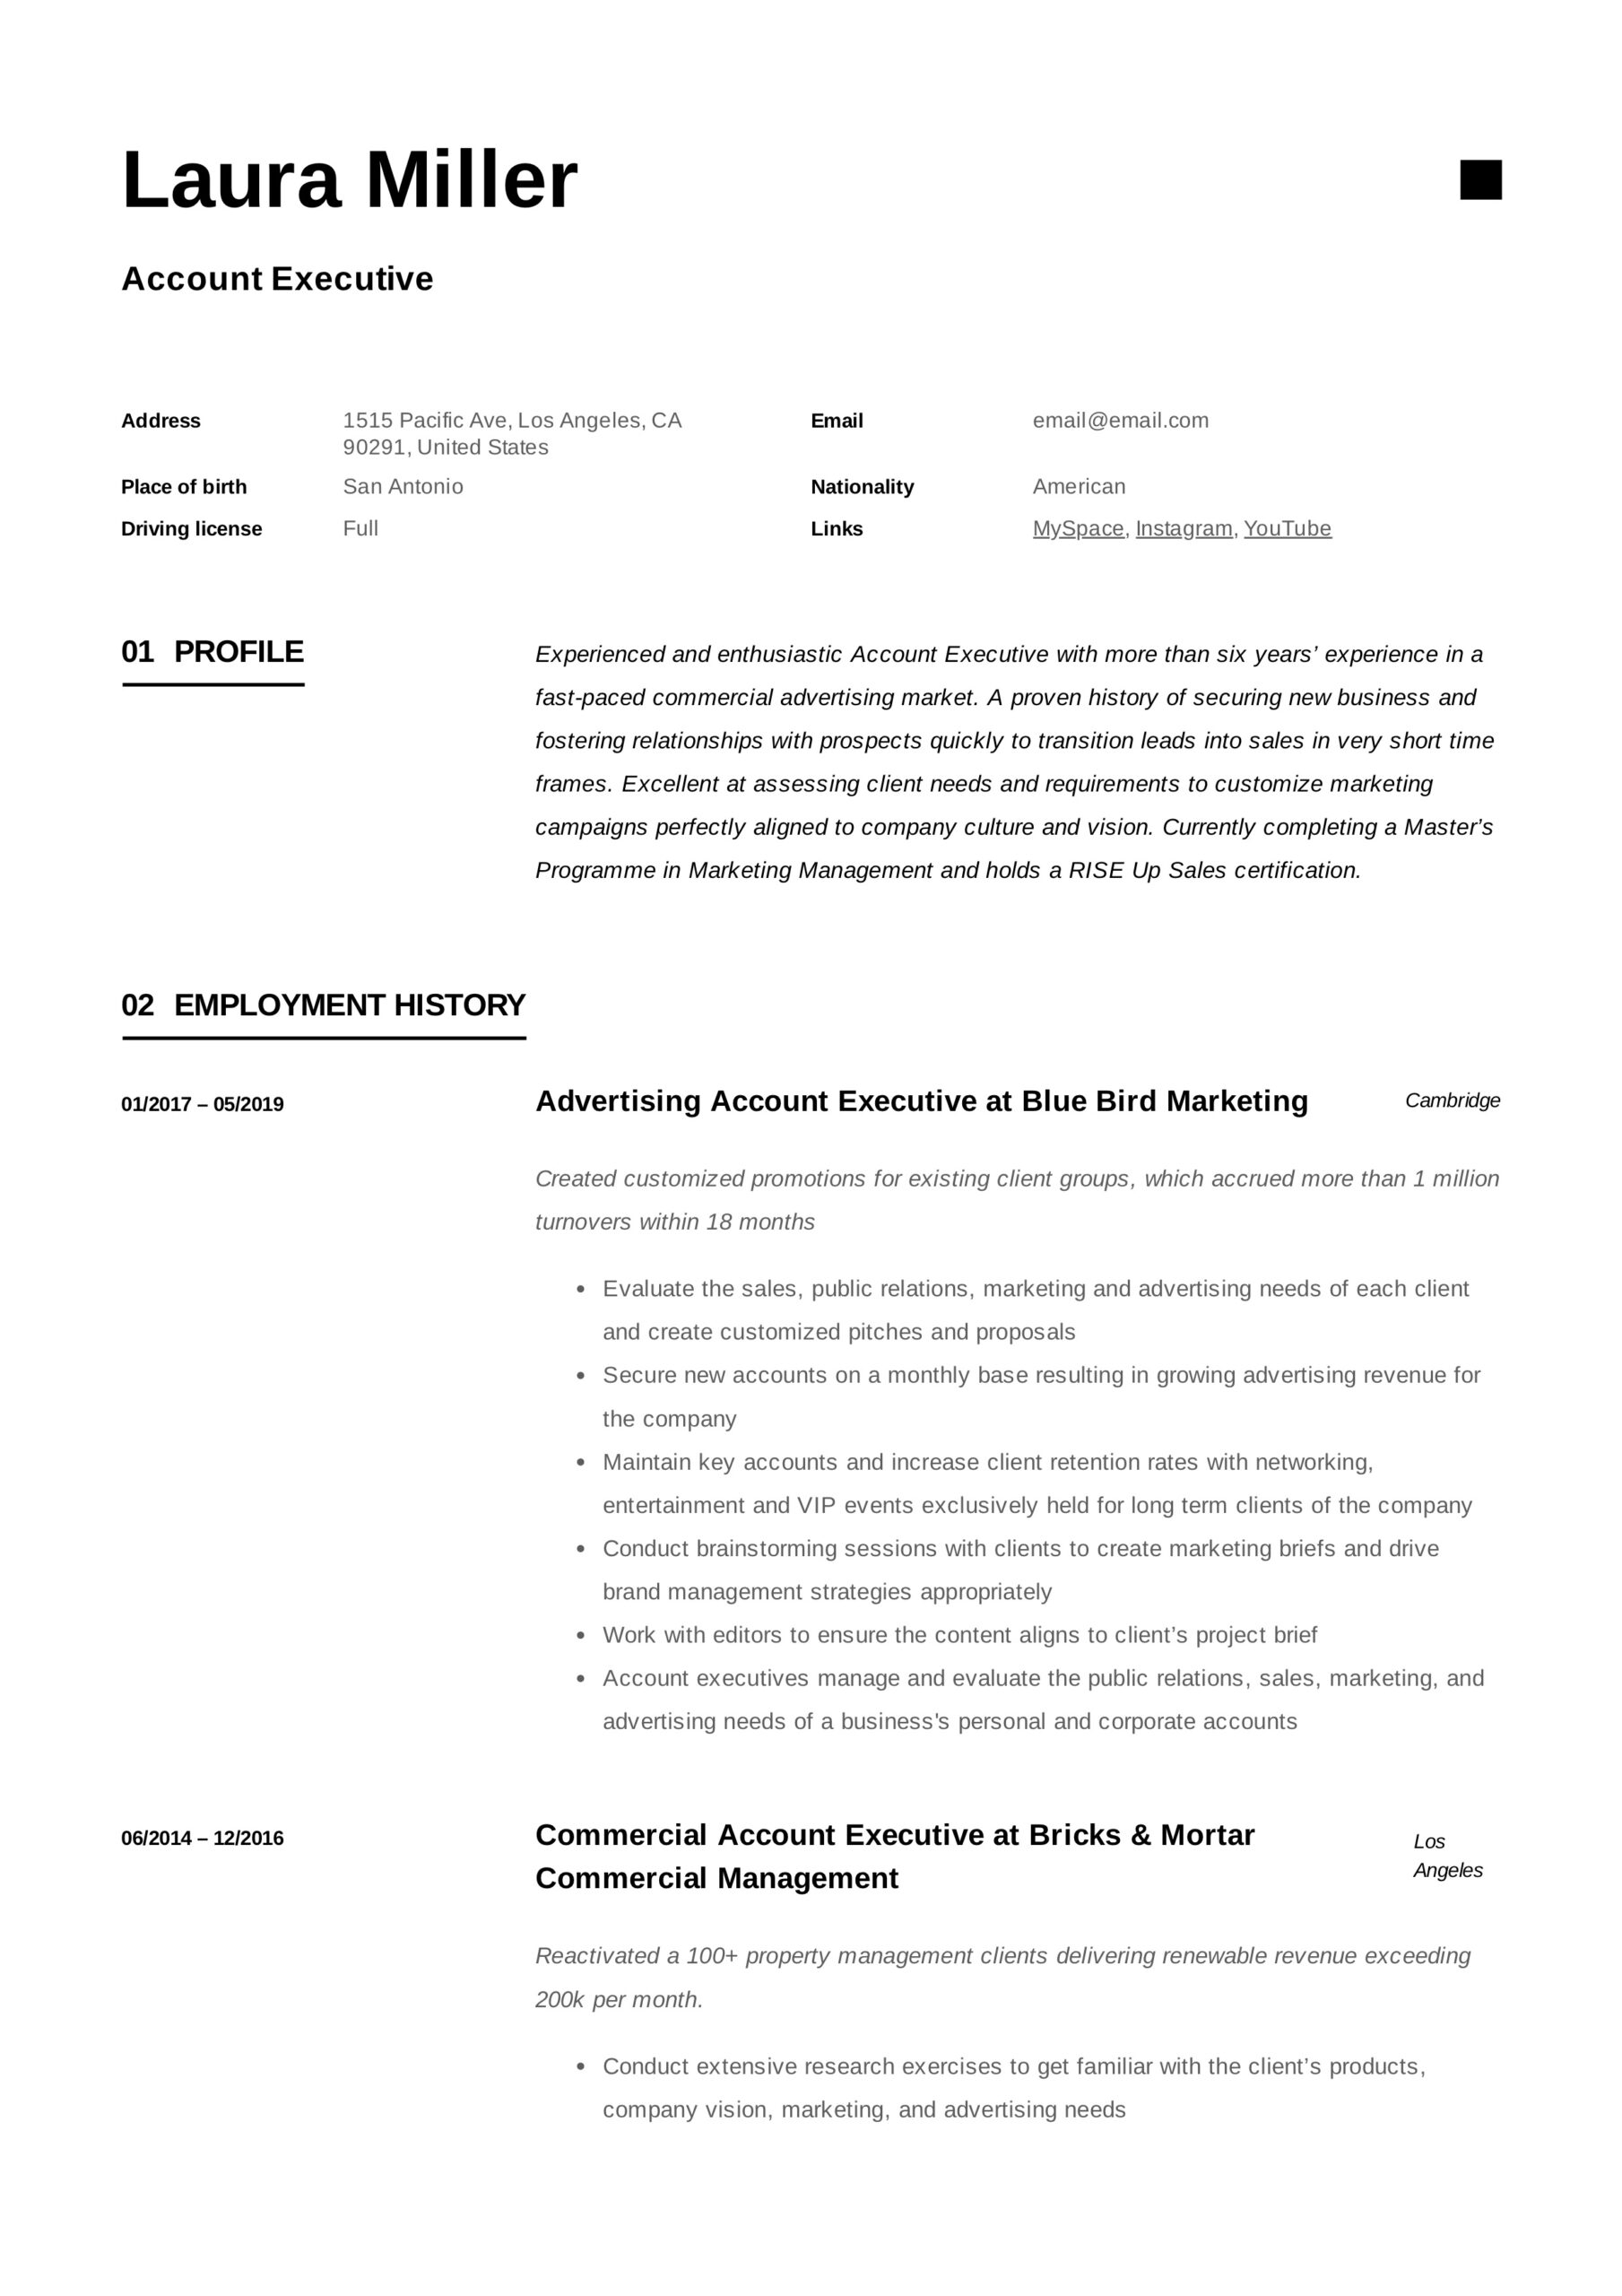 account executive resume writing guide templates pdf example badminton coach short and Resume Account Executive Resume